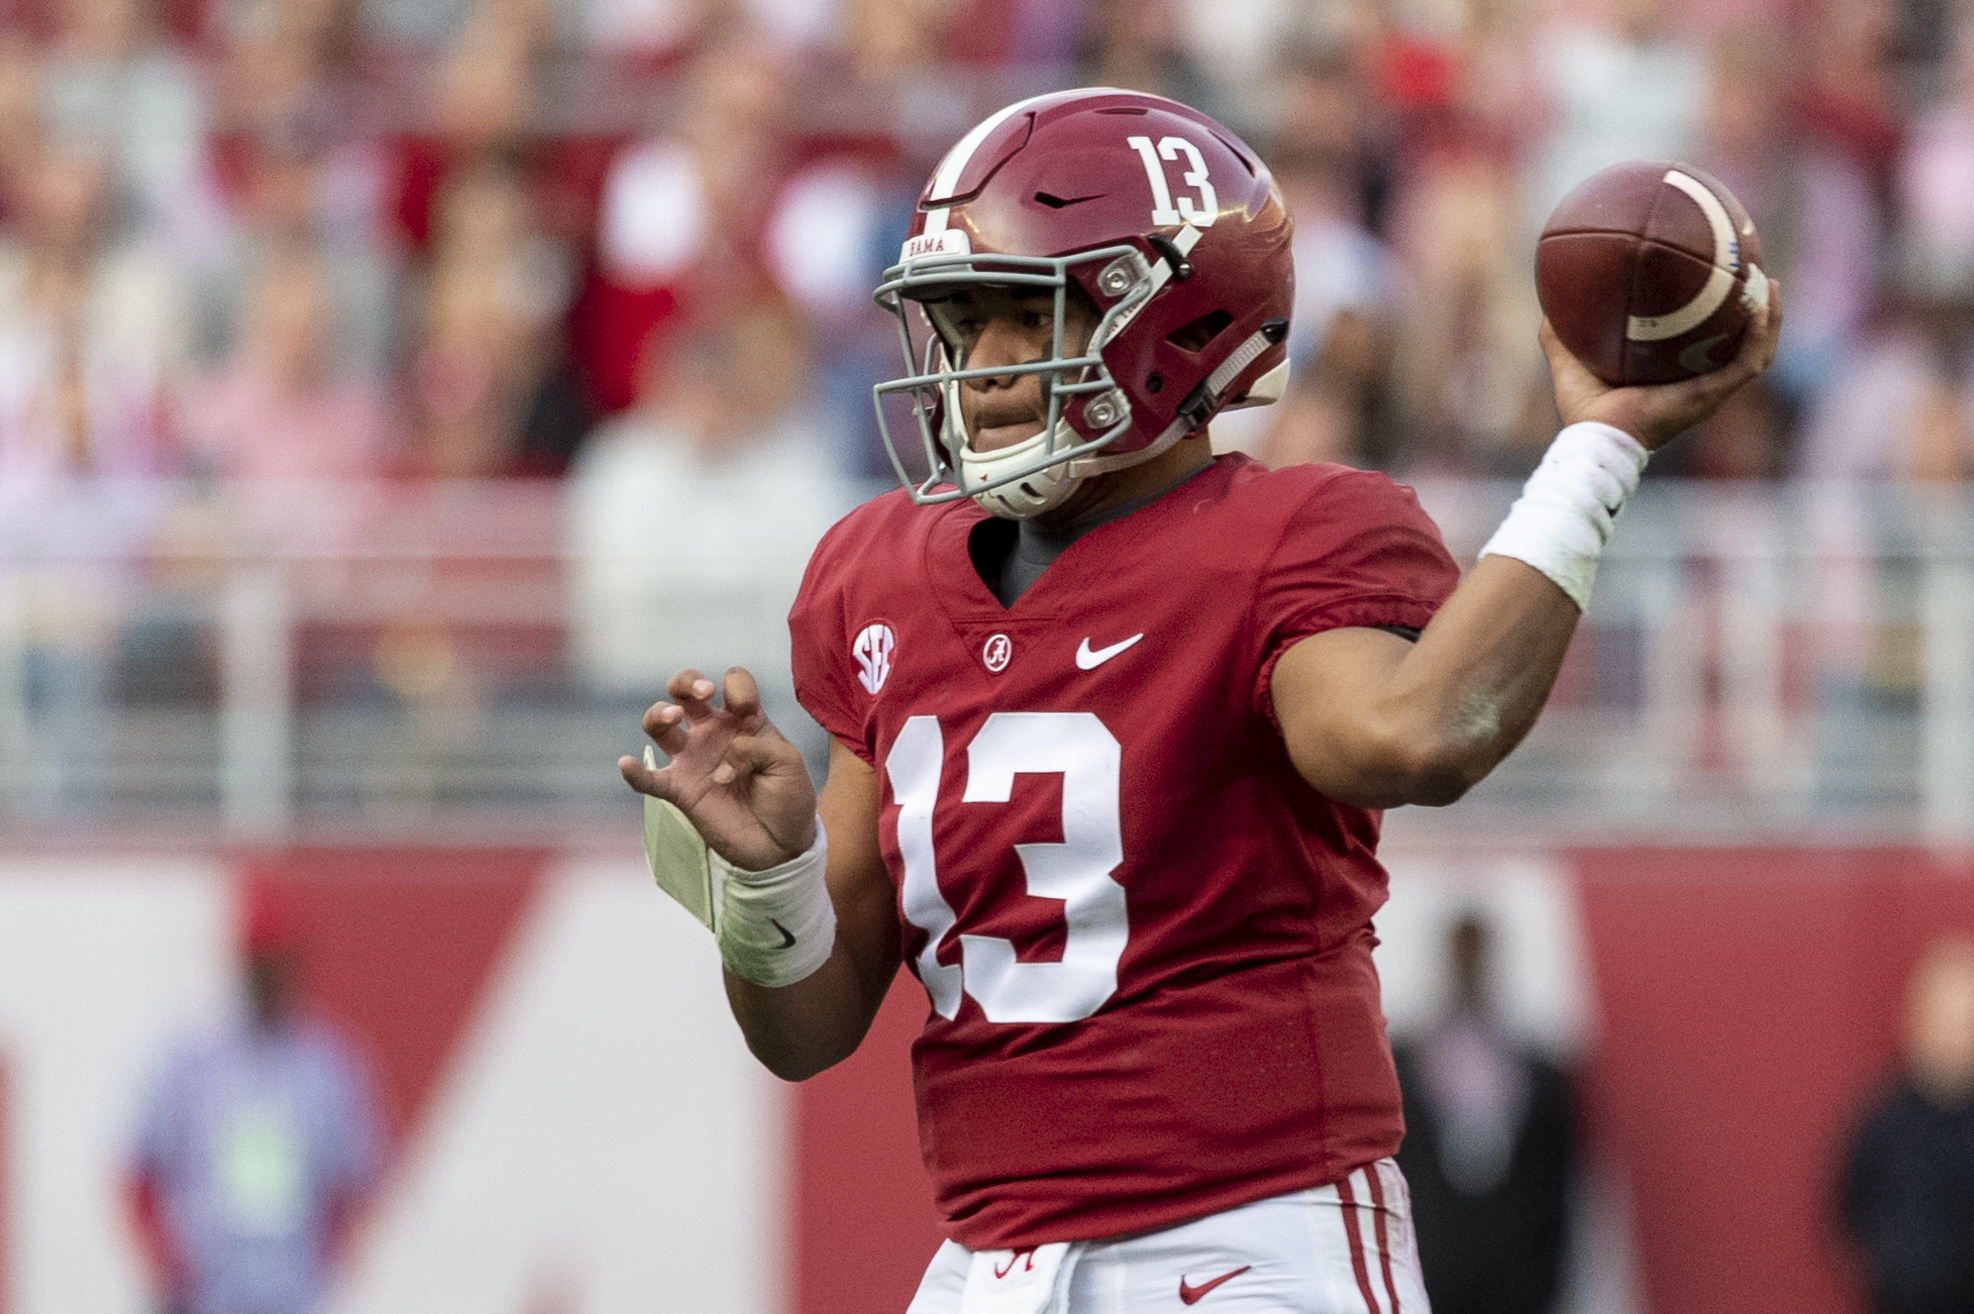 Best Rookies Nfl 2020 NFL Draft 2020: Top Prospects and 1st Round Mock Predictions